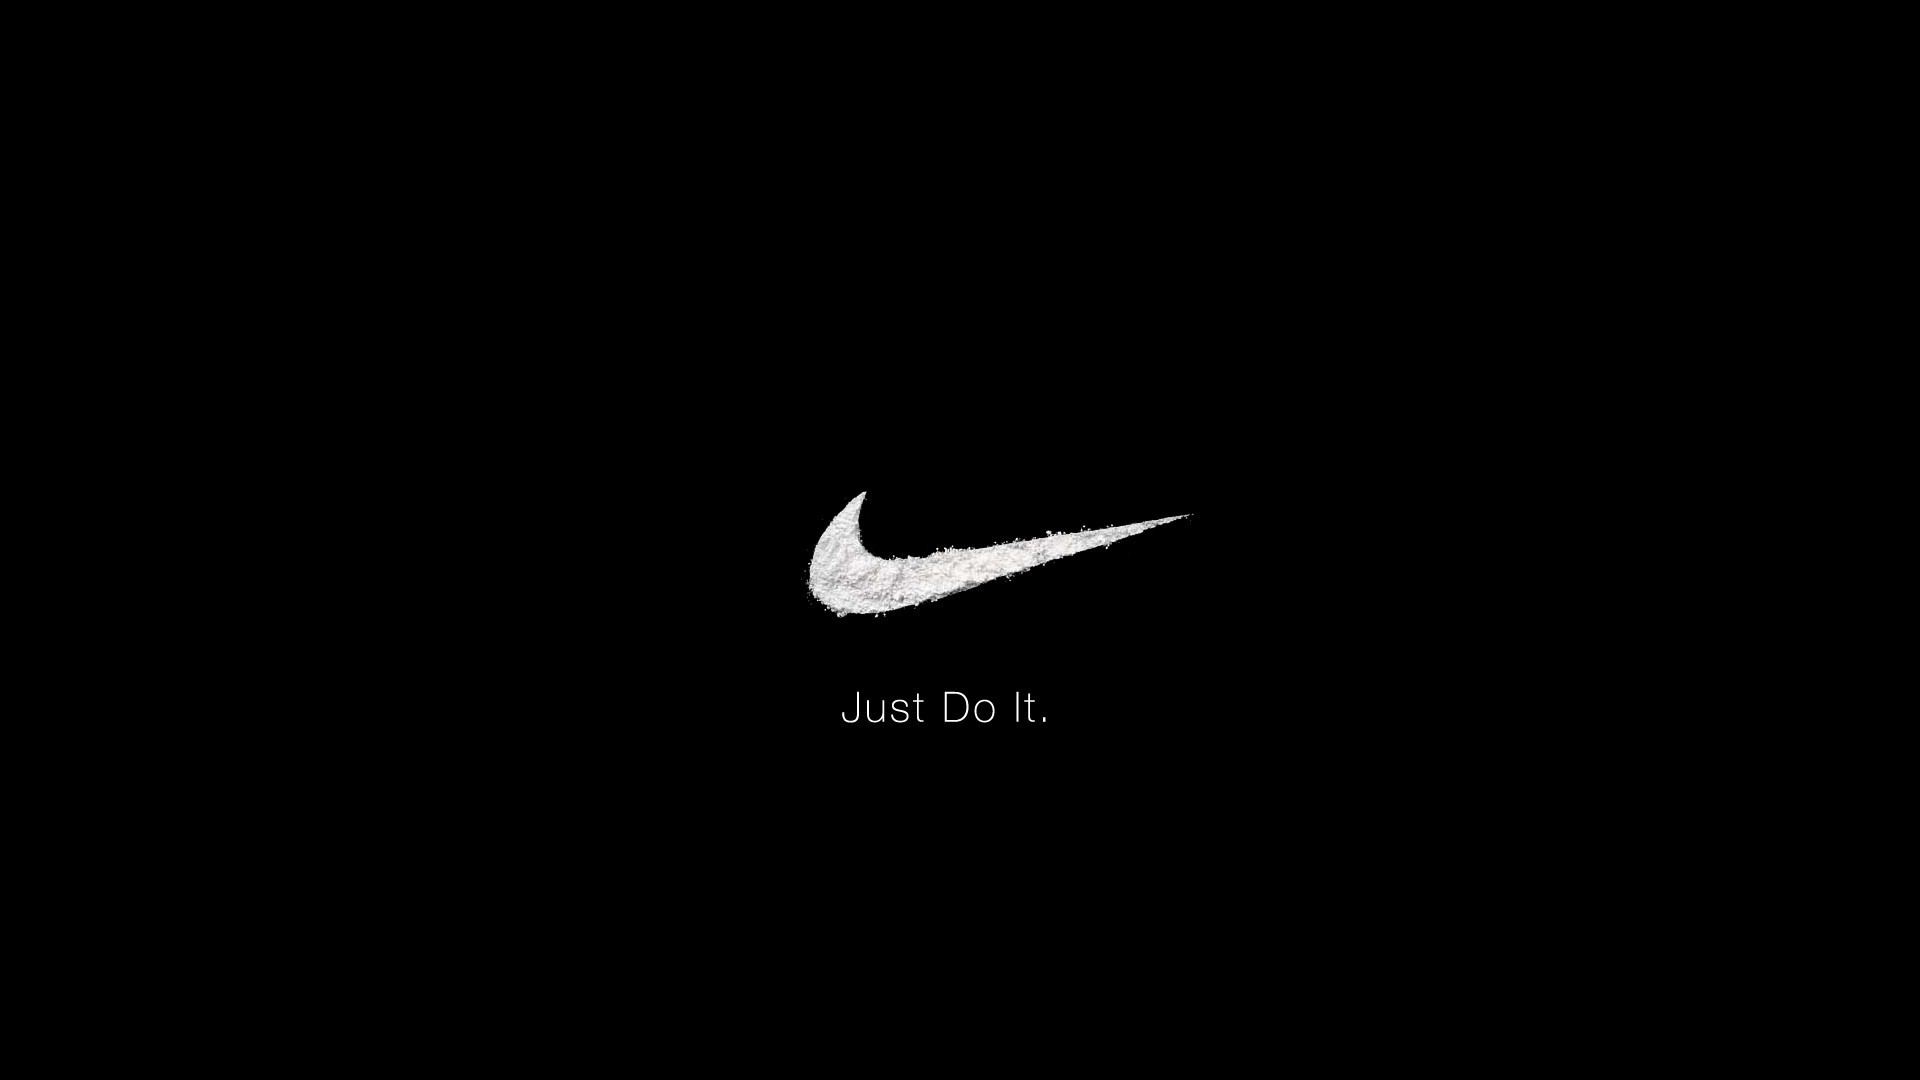 Black Nike Wallpaper HD And Background For Ipad cute Wallpapers 1920x1080